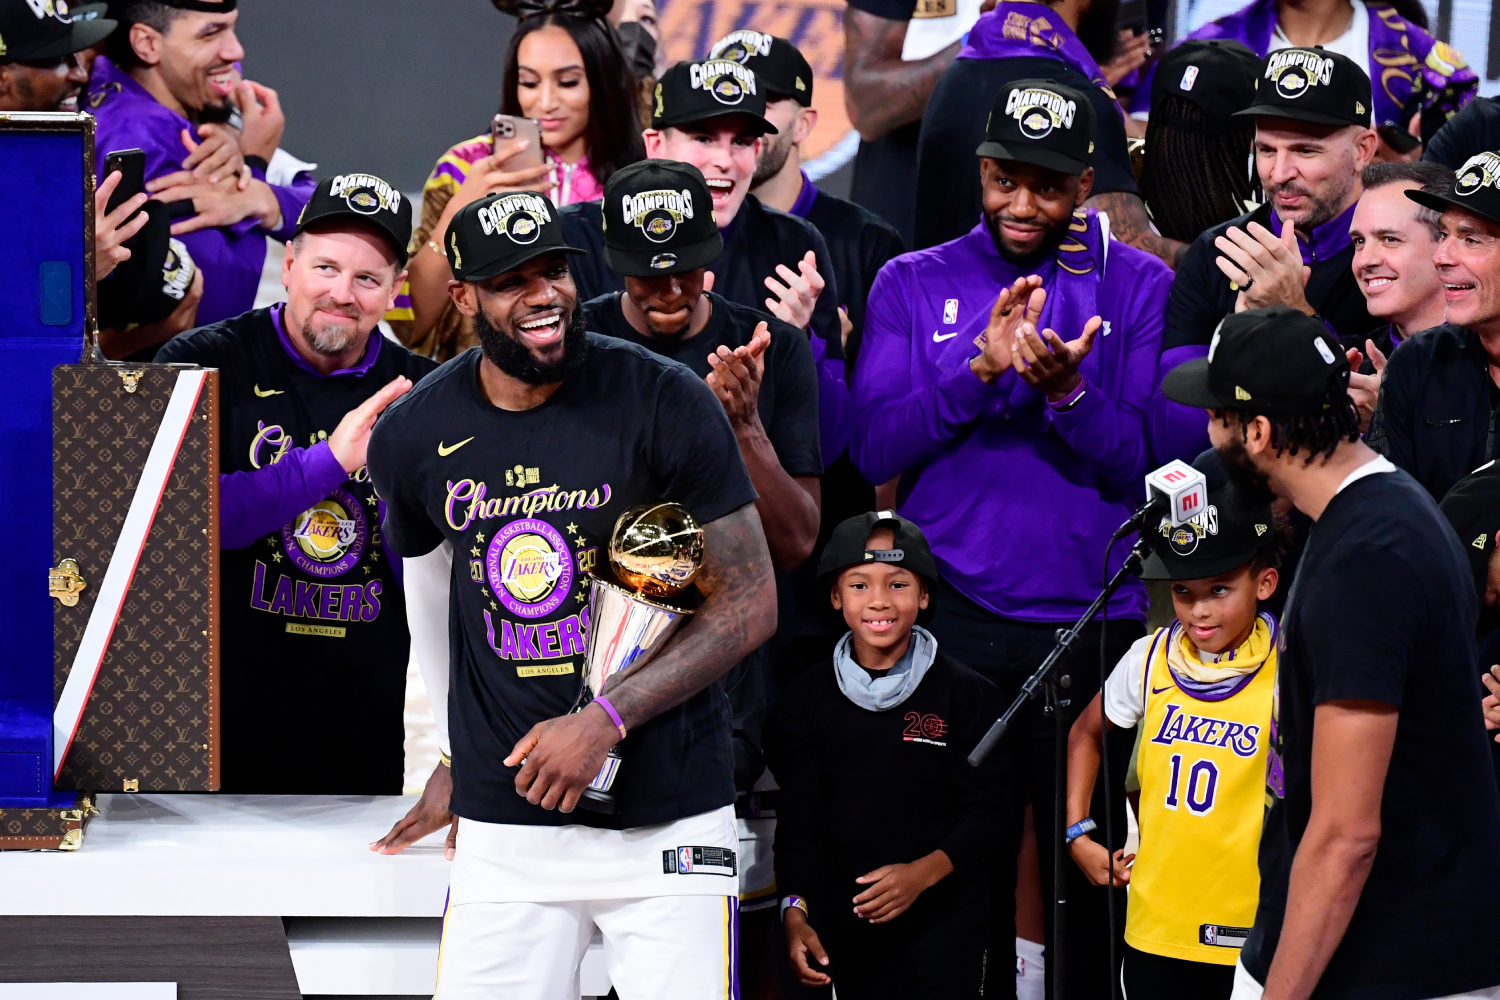 LeBron James and the Lakers look to repeat this upcoming season. James seems to be pretty excited about his new teammates, too.